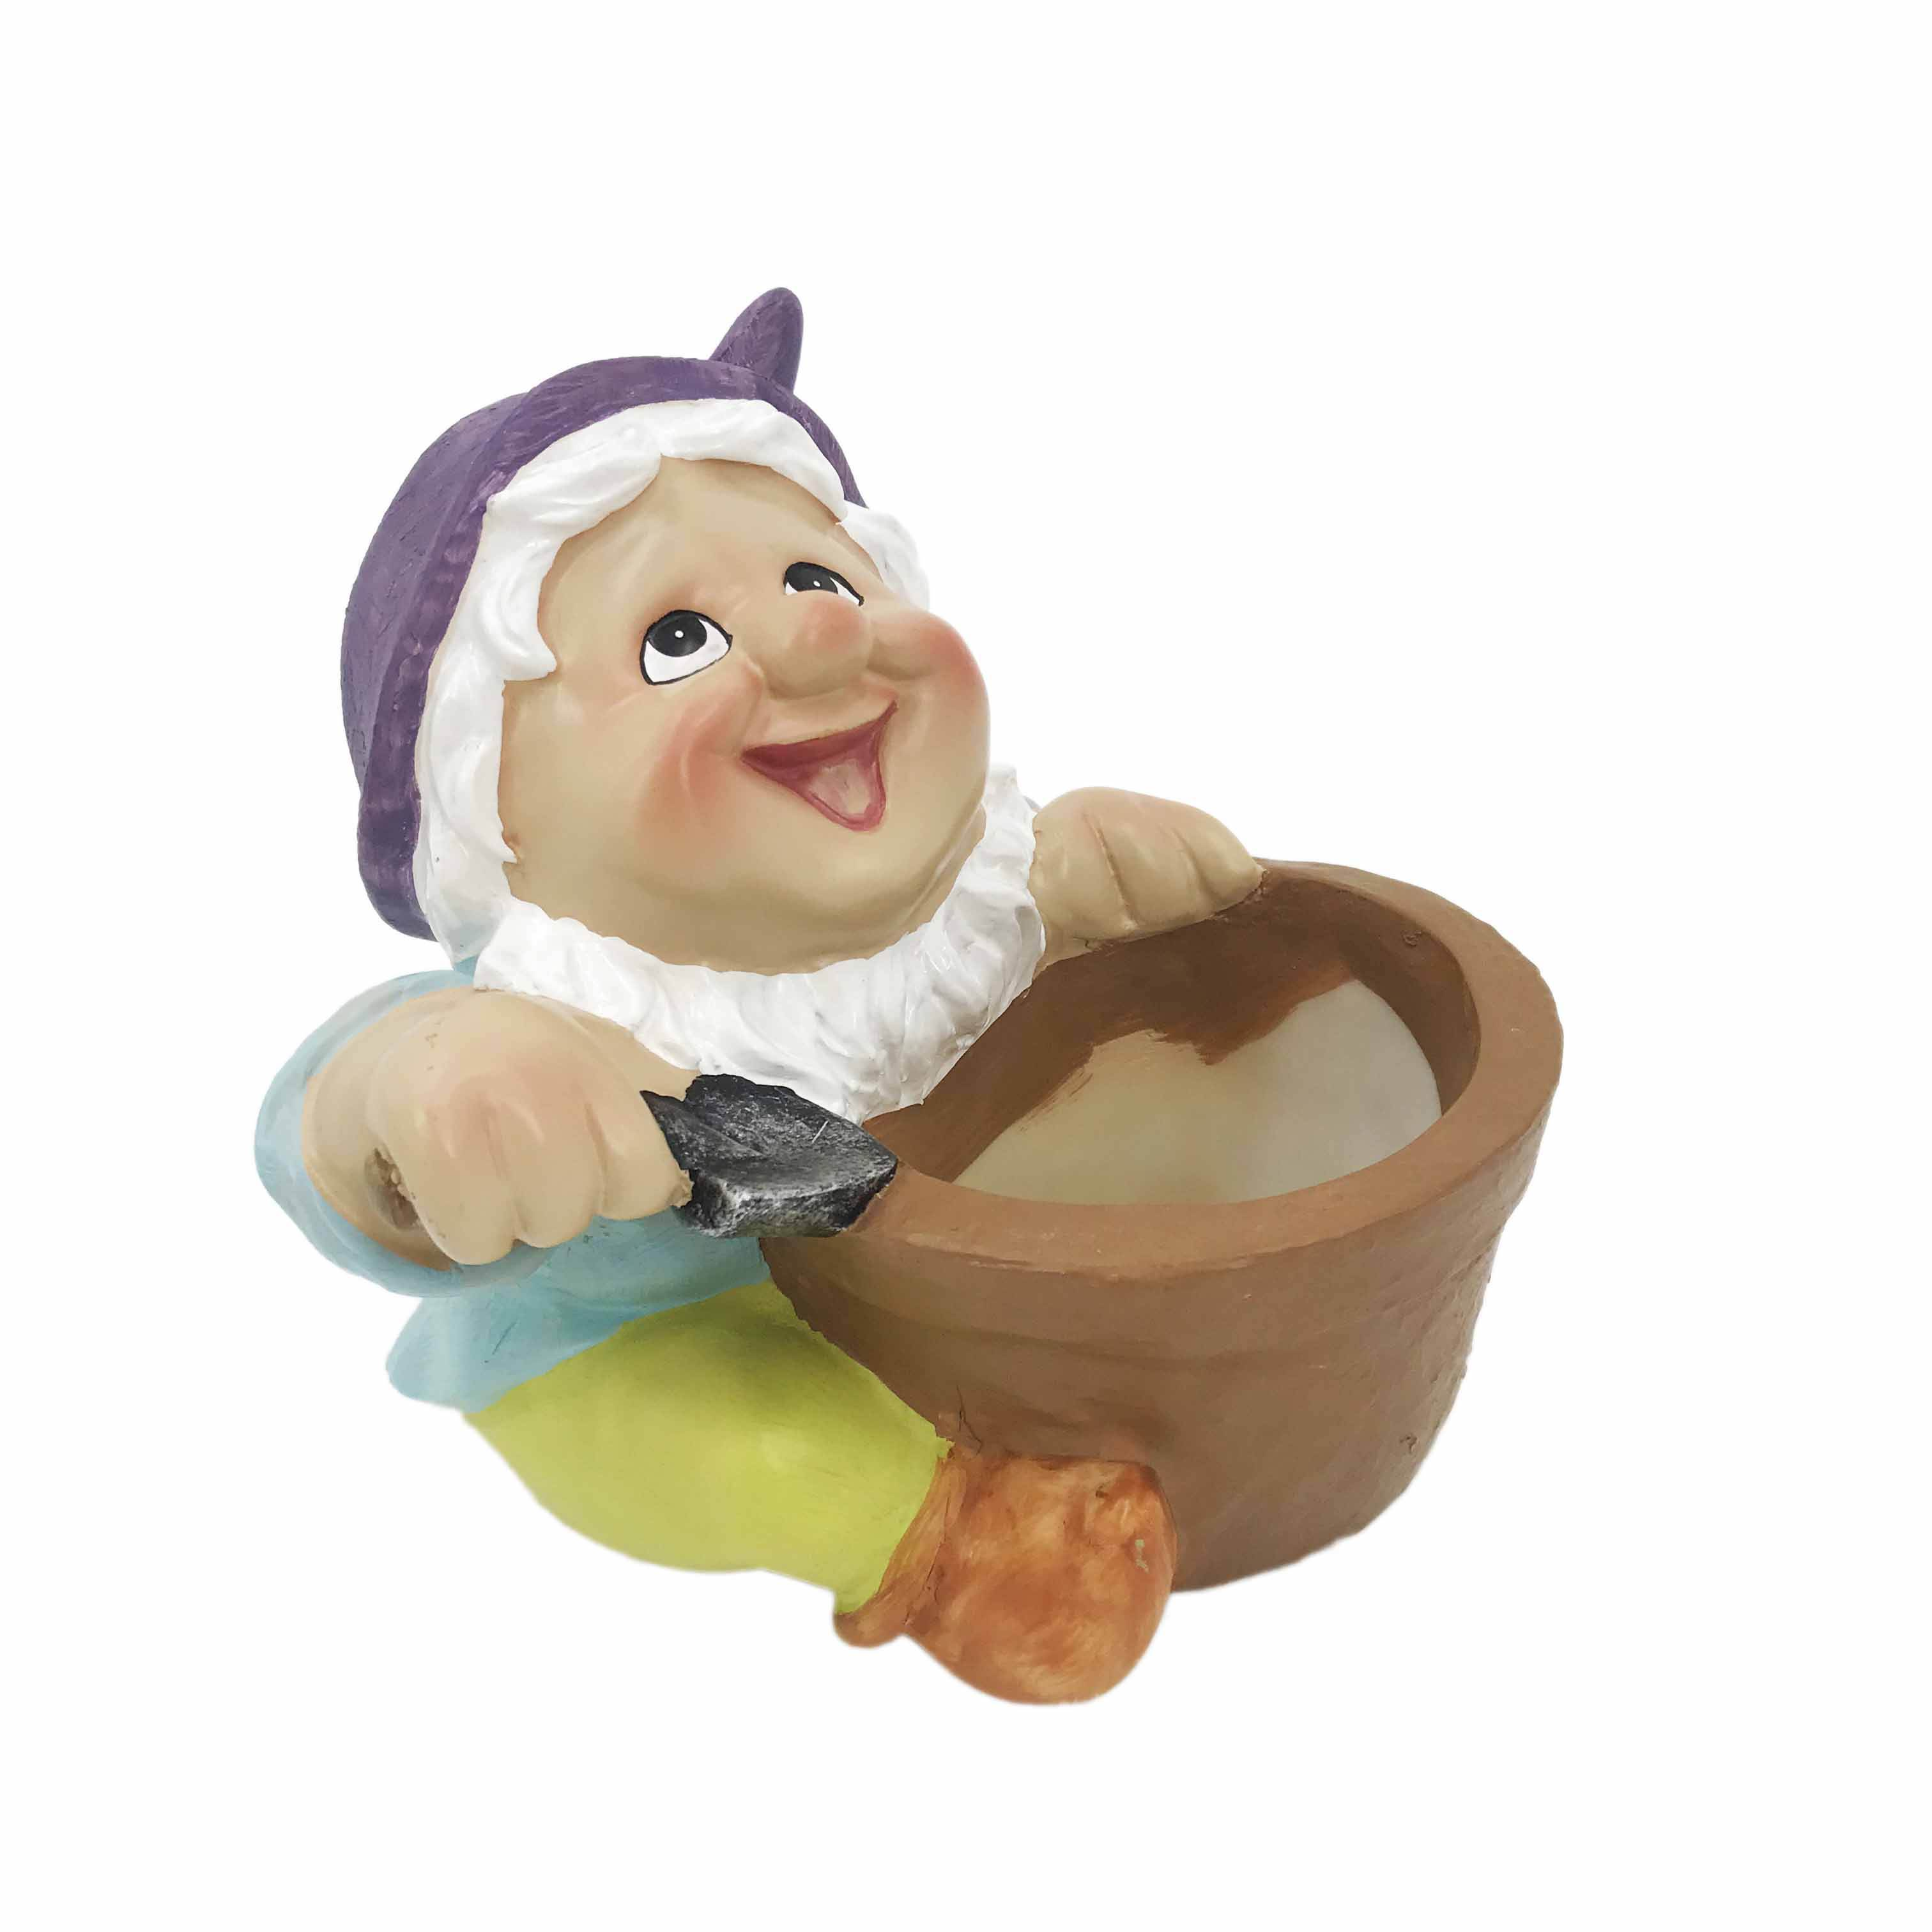 Indoor yard decorative home garden decor accessories miniature funny gnome state flower pots